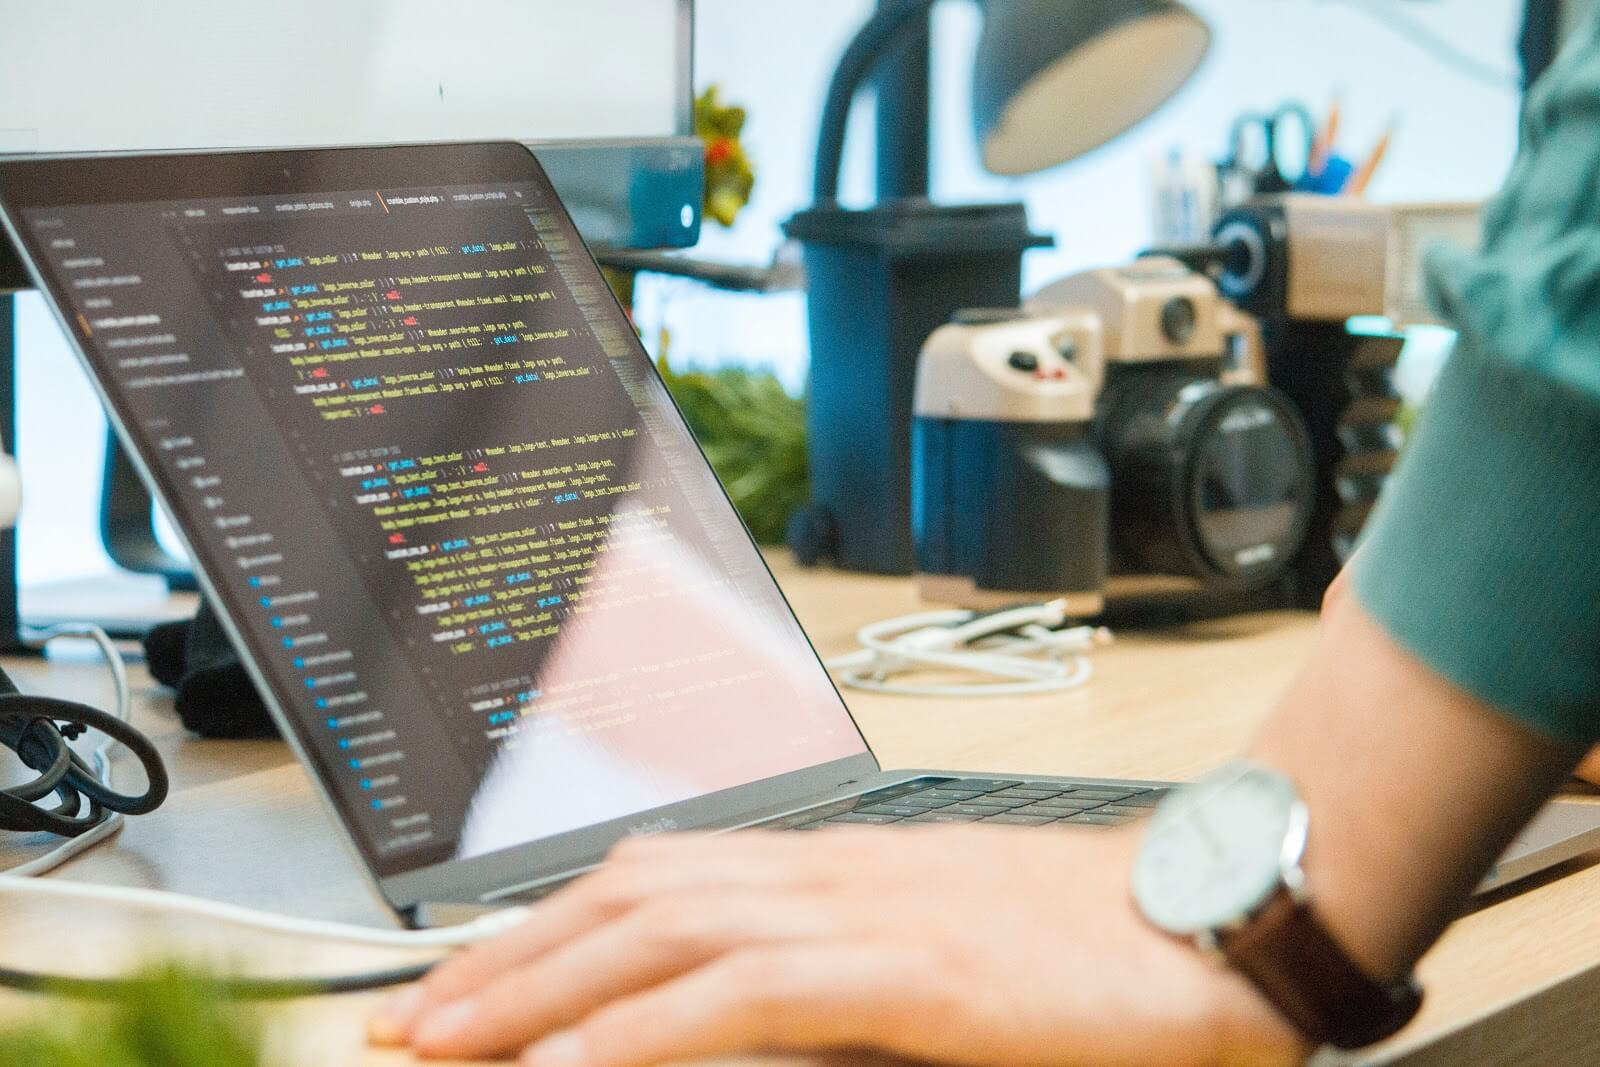 How to become a software developer: A hand leans on a desk in front of a laptop screen covered in code